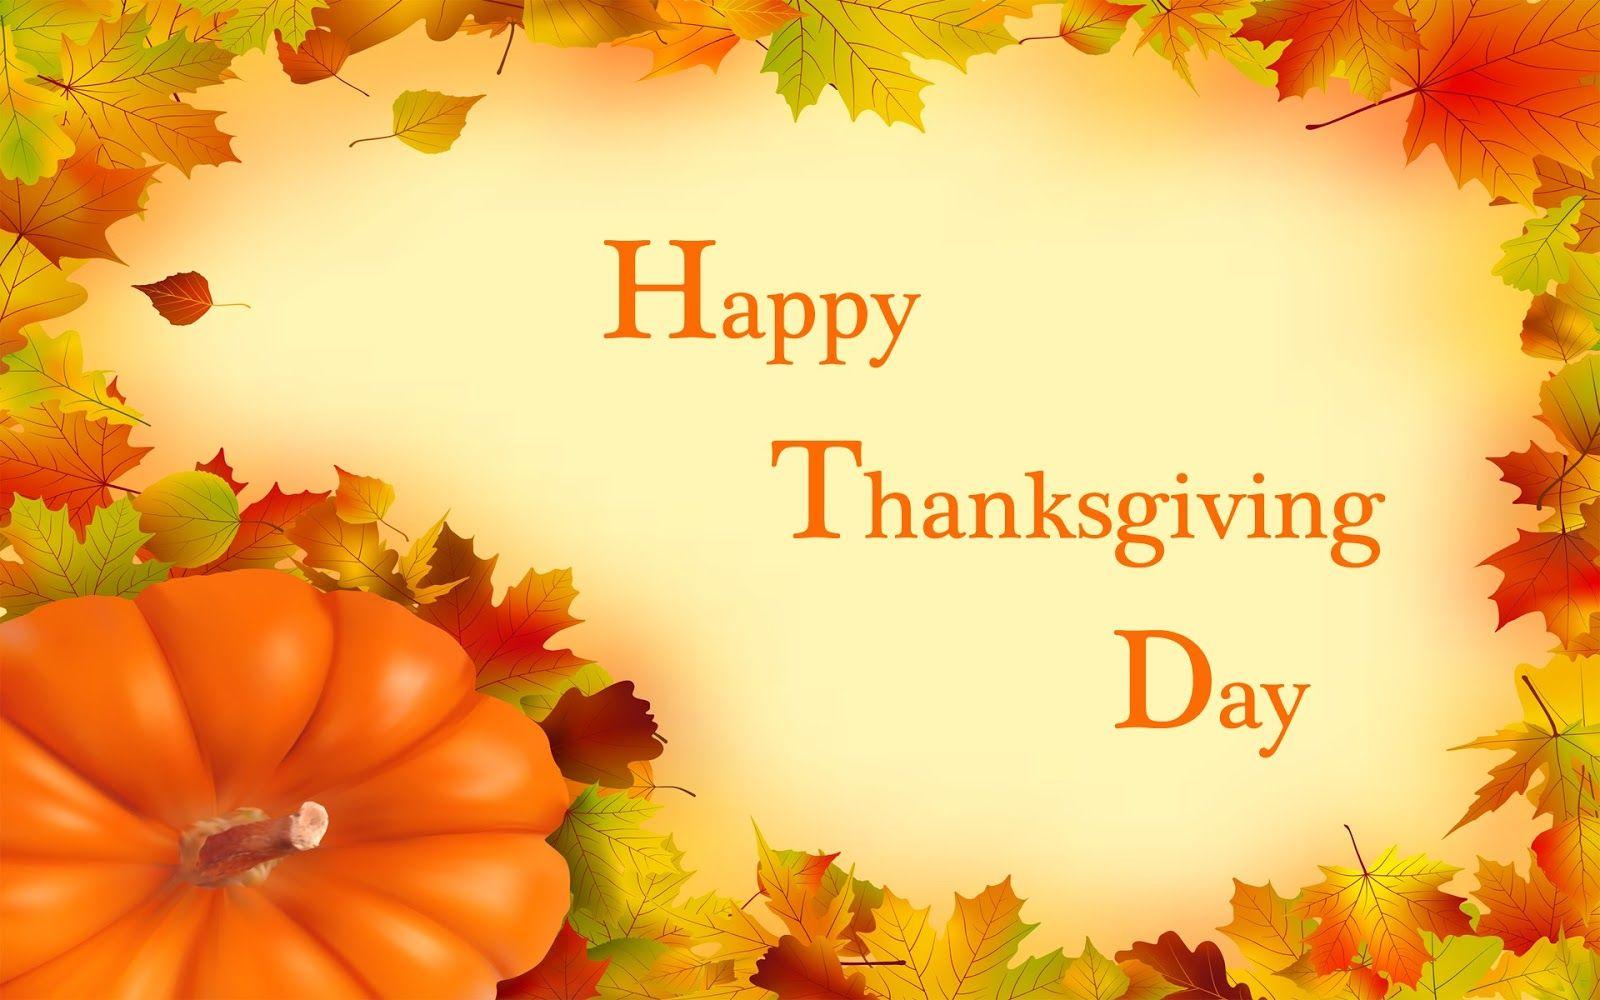 Happy Thanksgiving Day Quotes And Sayings